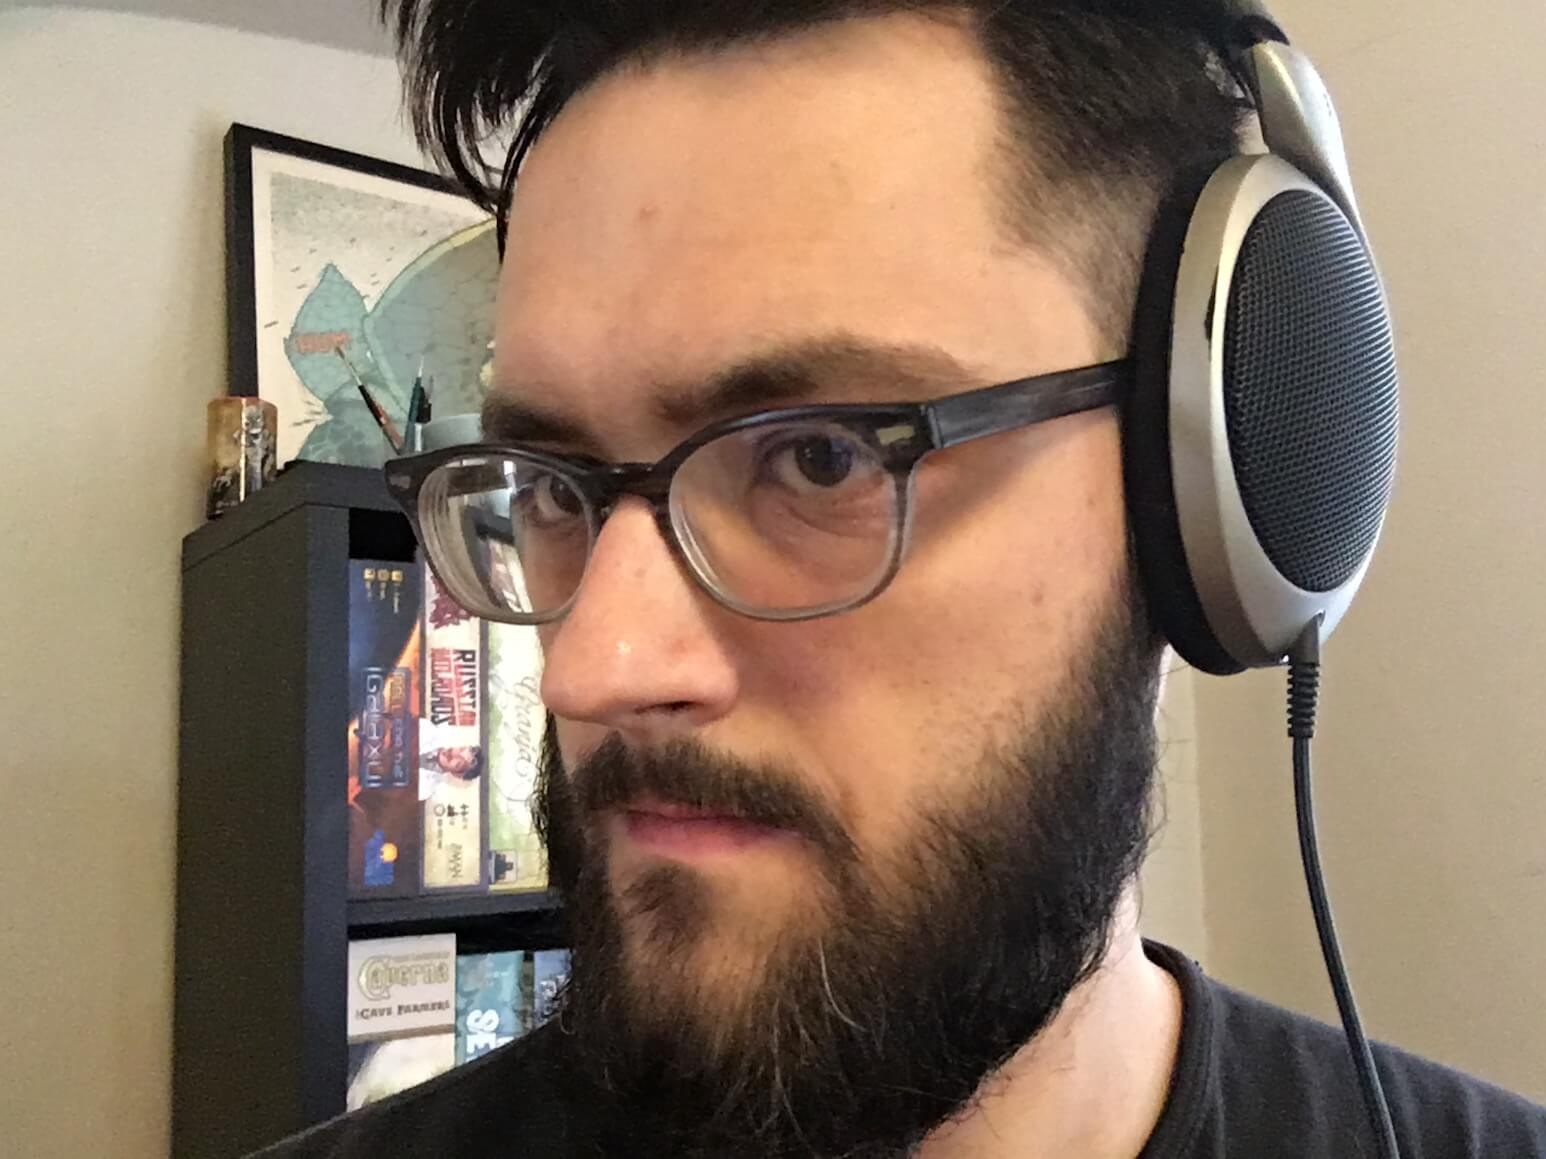 Aaron Zimmerman's Sennheisers match his beard.